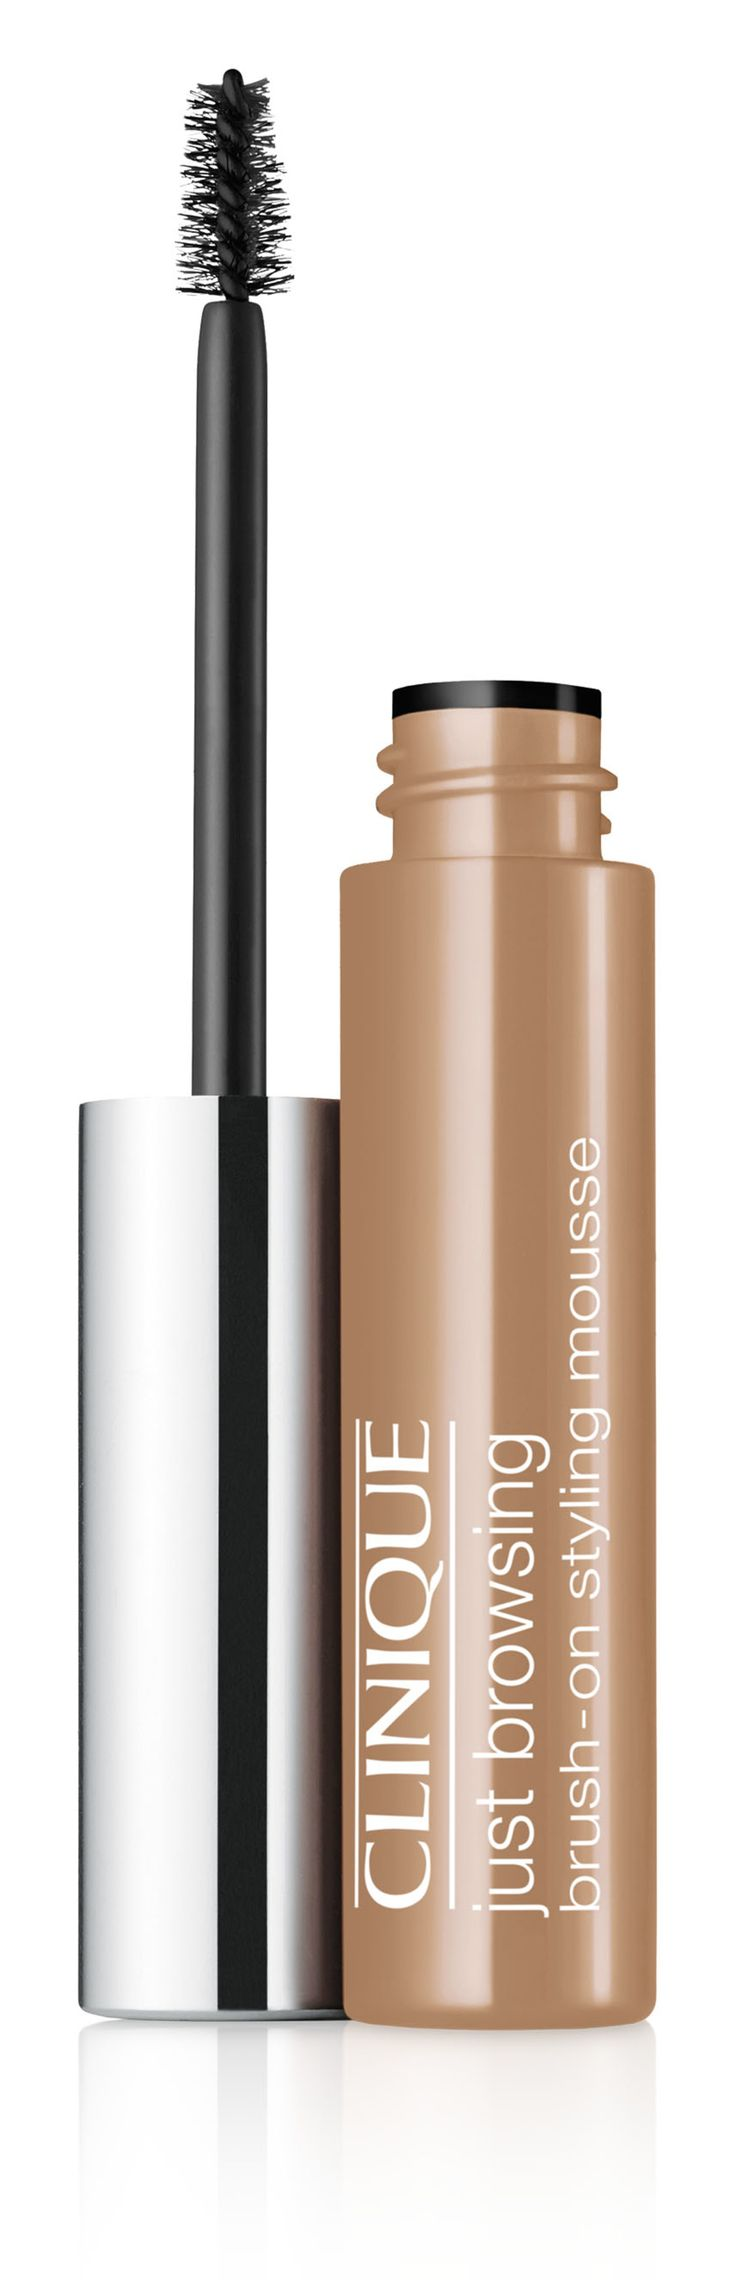 Autumn Makeup Trend: Bold Brows. Get the look with Clinique Just Browsing Brush-On Styling Mousse in Blonde. 24-hour long-wearing brow mousse tints, tames, fills-in even the sparsest brows.